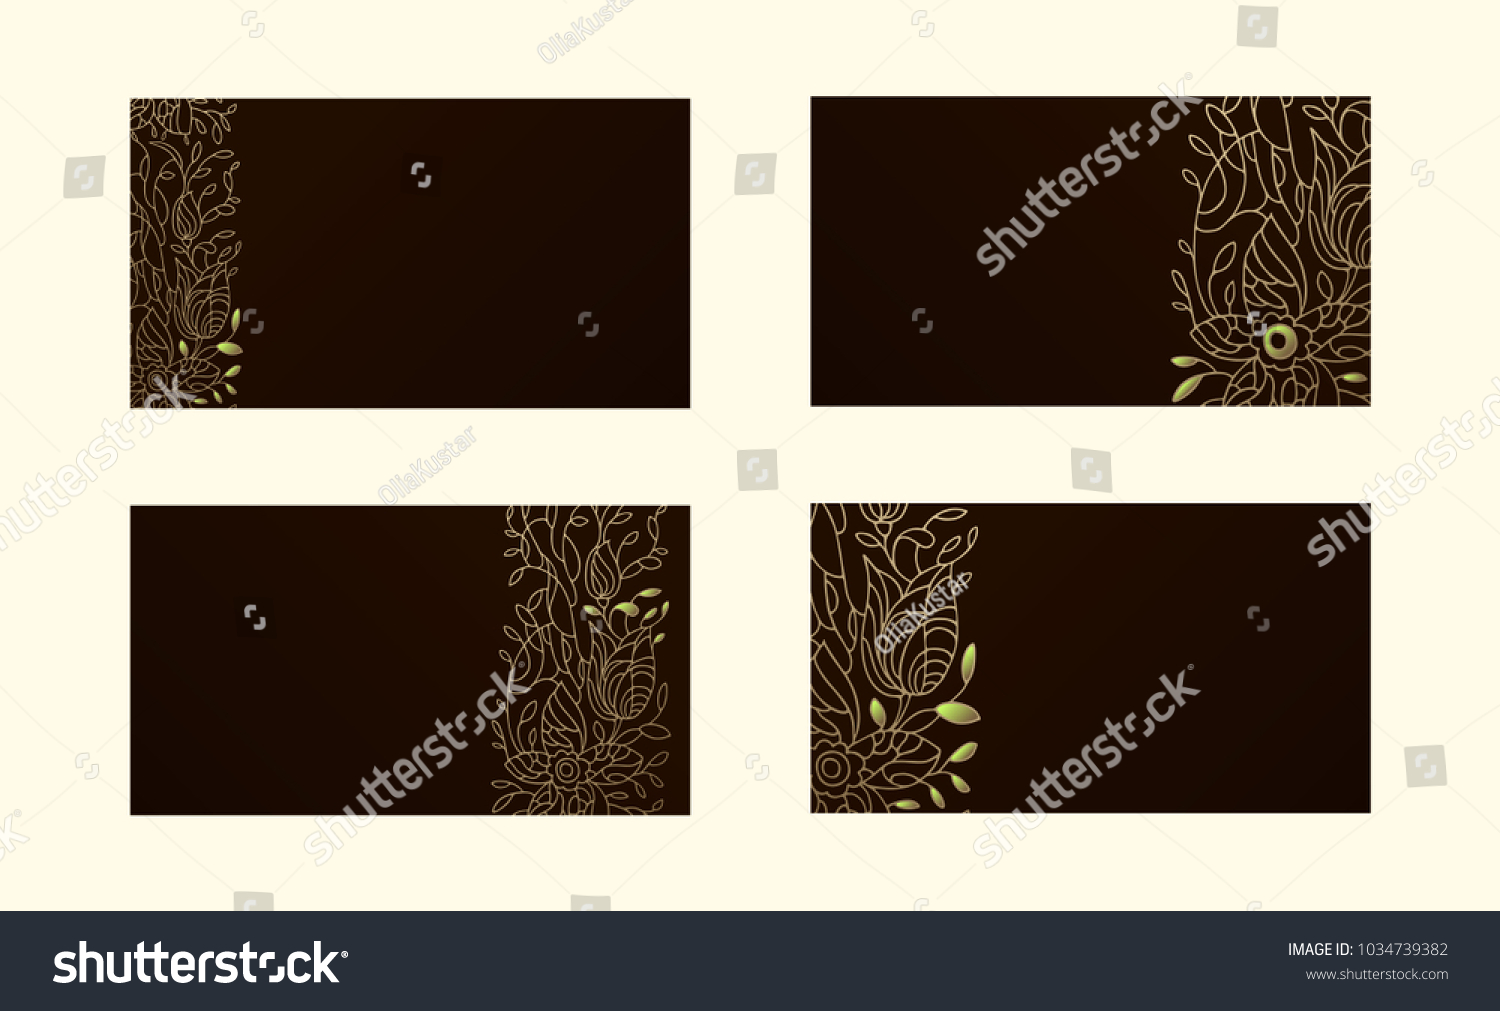 Backgrounds Business Cards Plastic Cards Thin Stock Vector ...